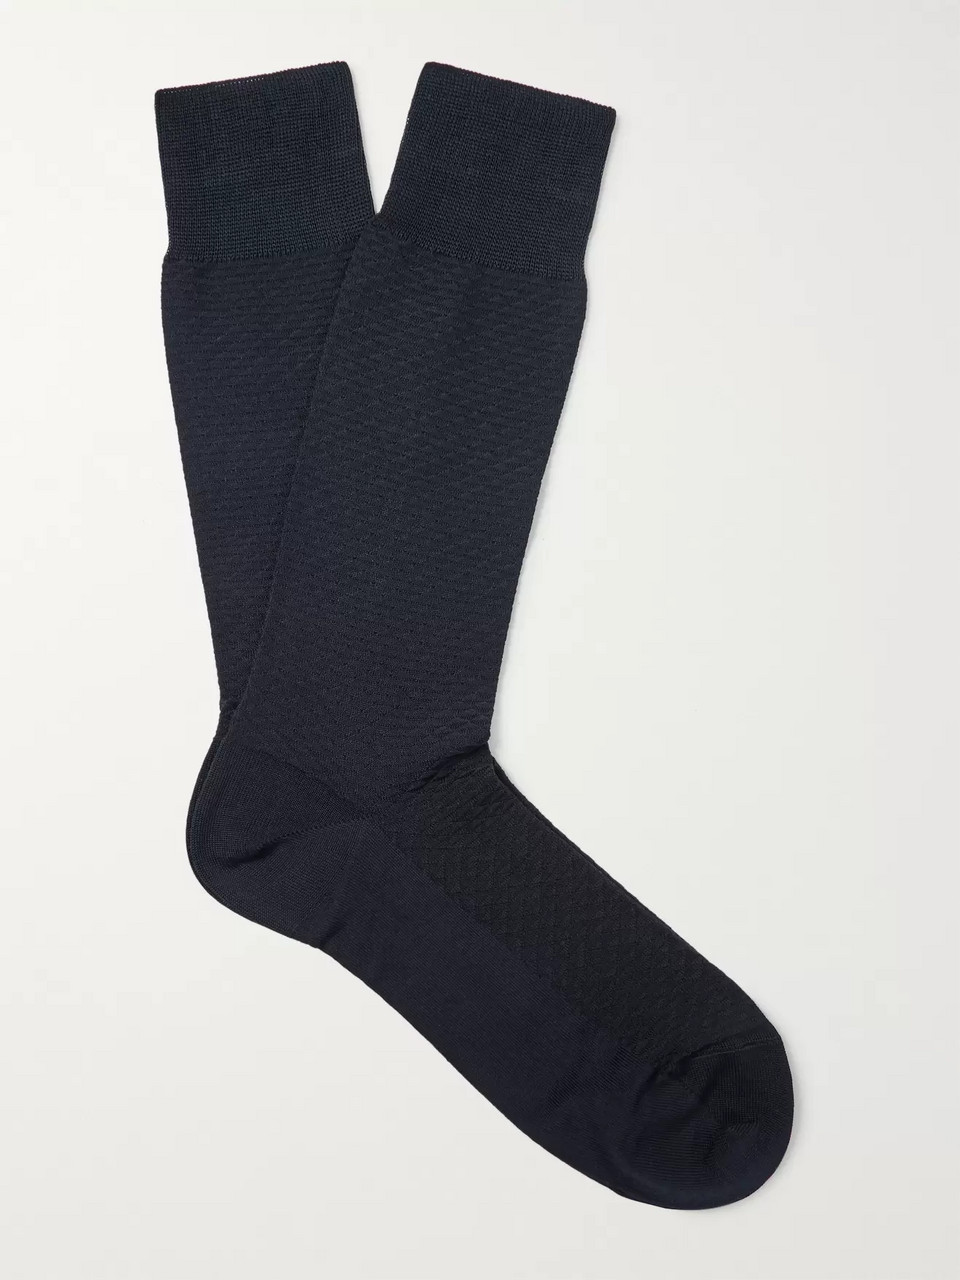 Ermenegildo Zegna Textured Stretch Cotton-Blend Socks